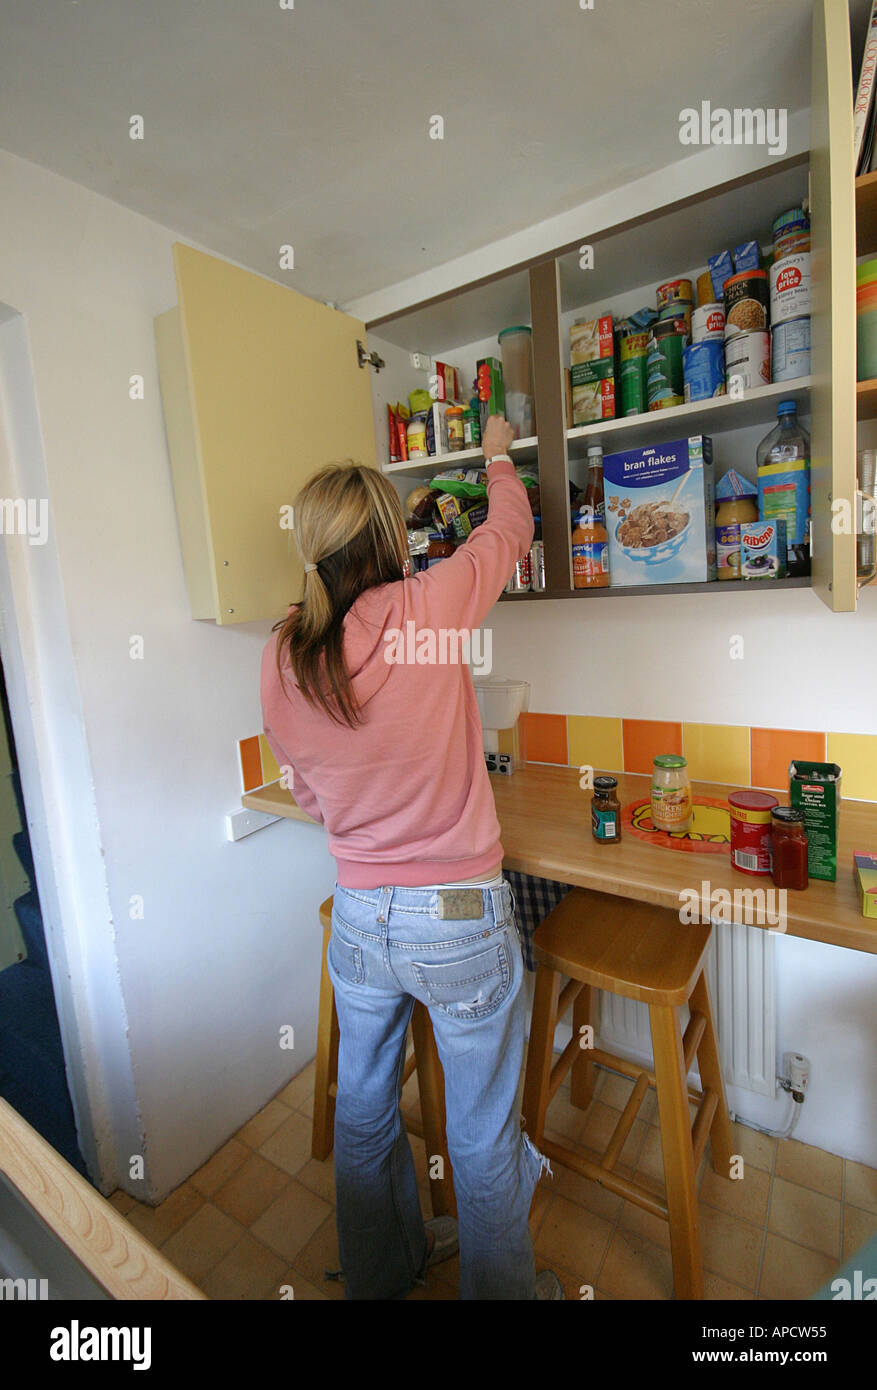 a student girls looking for food in a cupboard in a student house - Stock Image